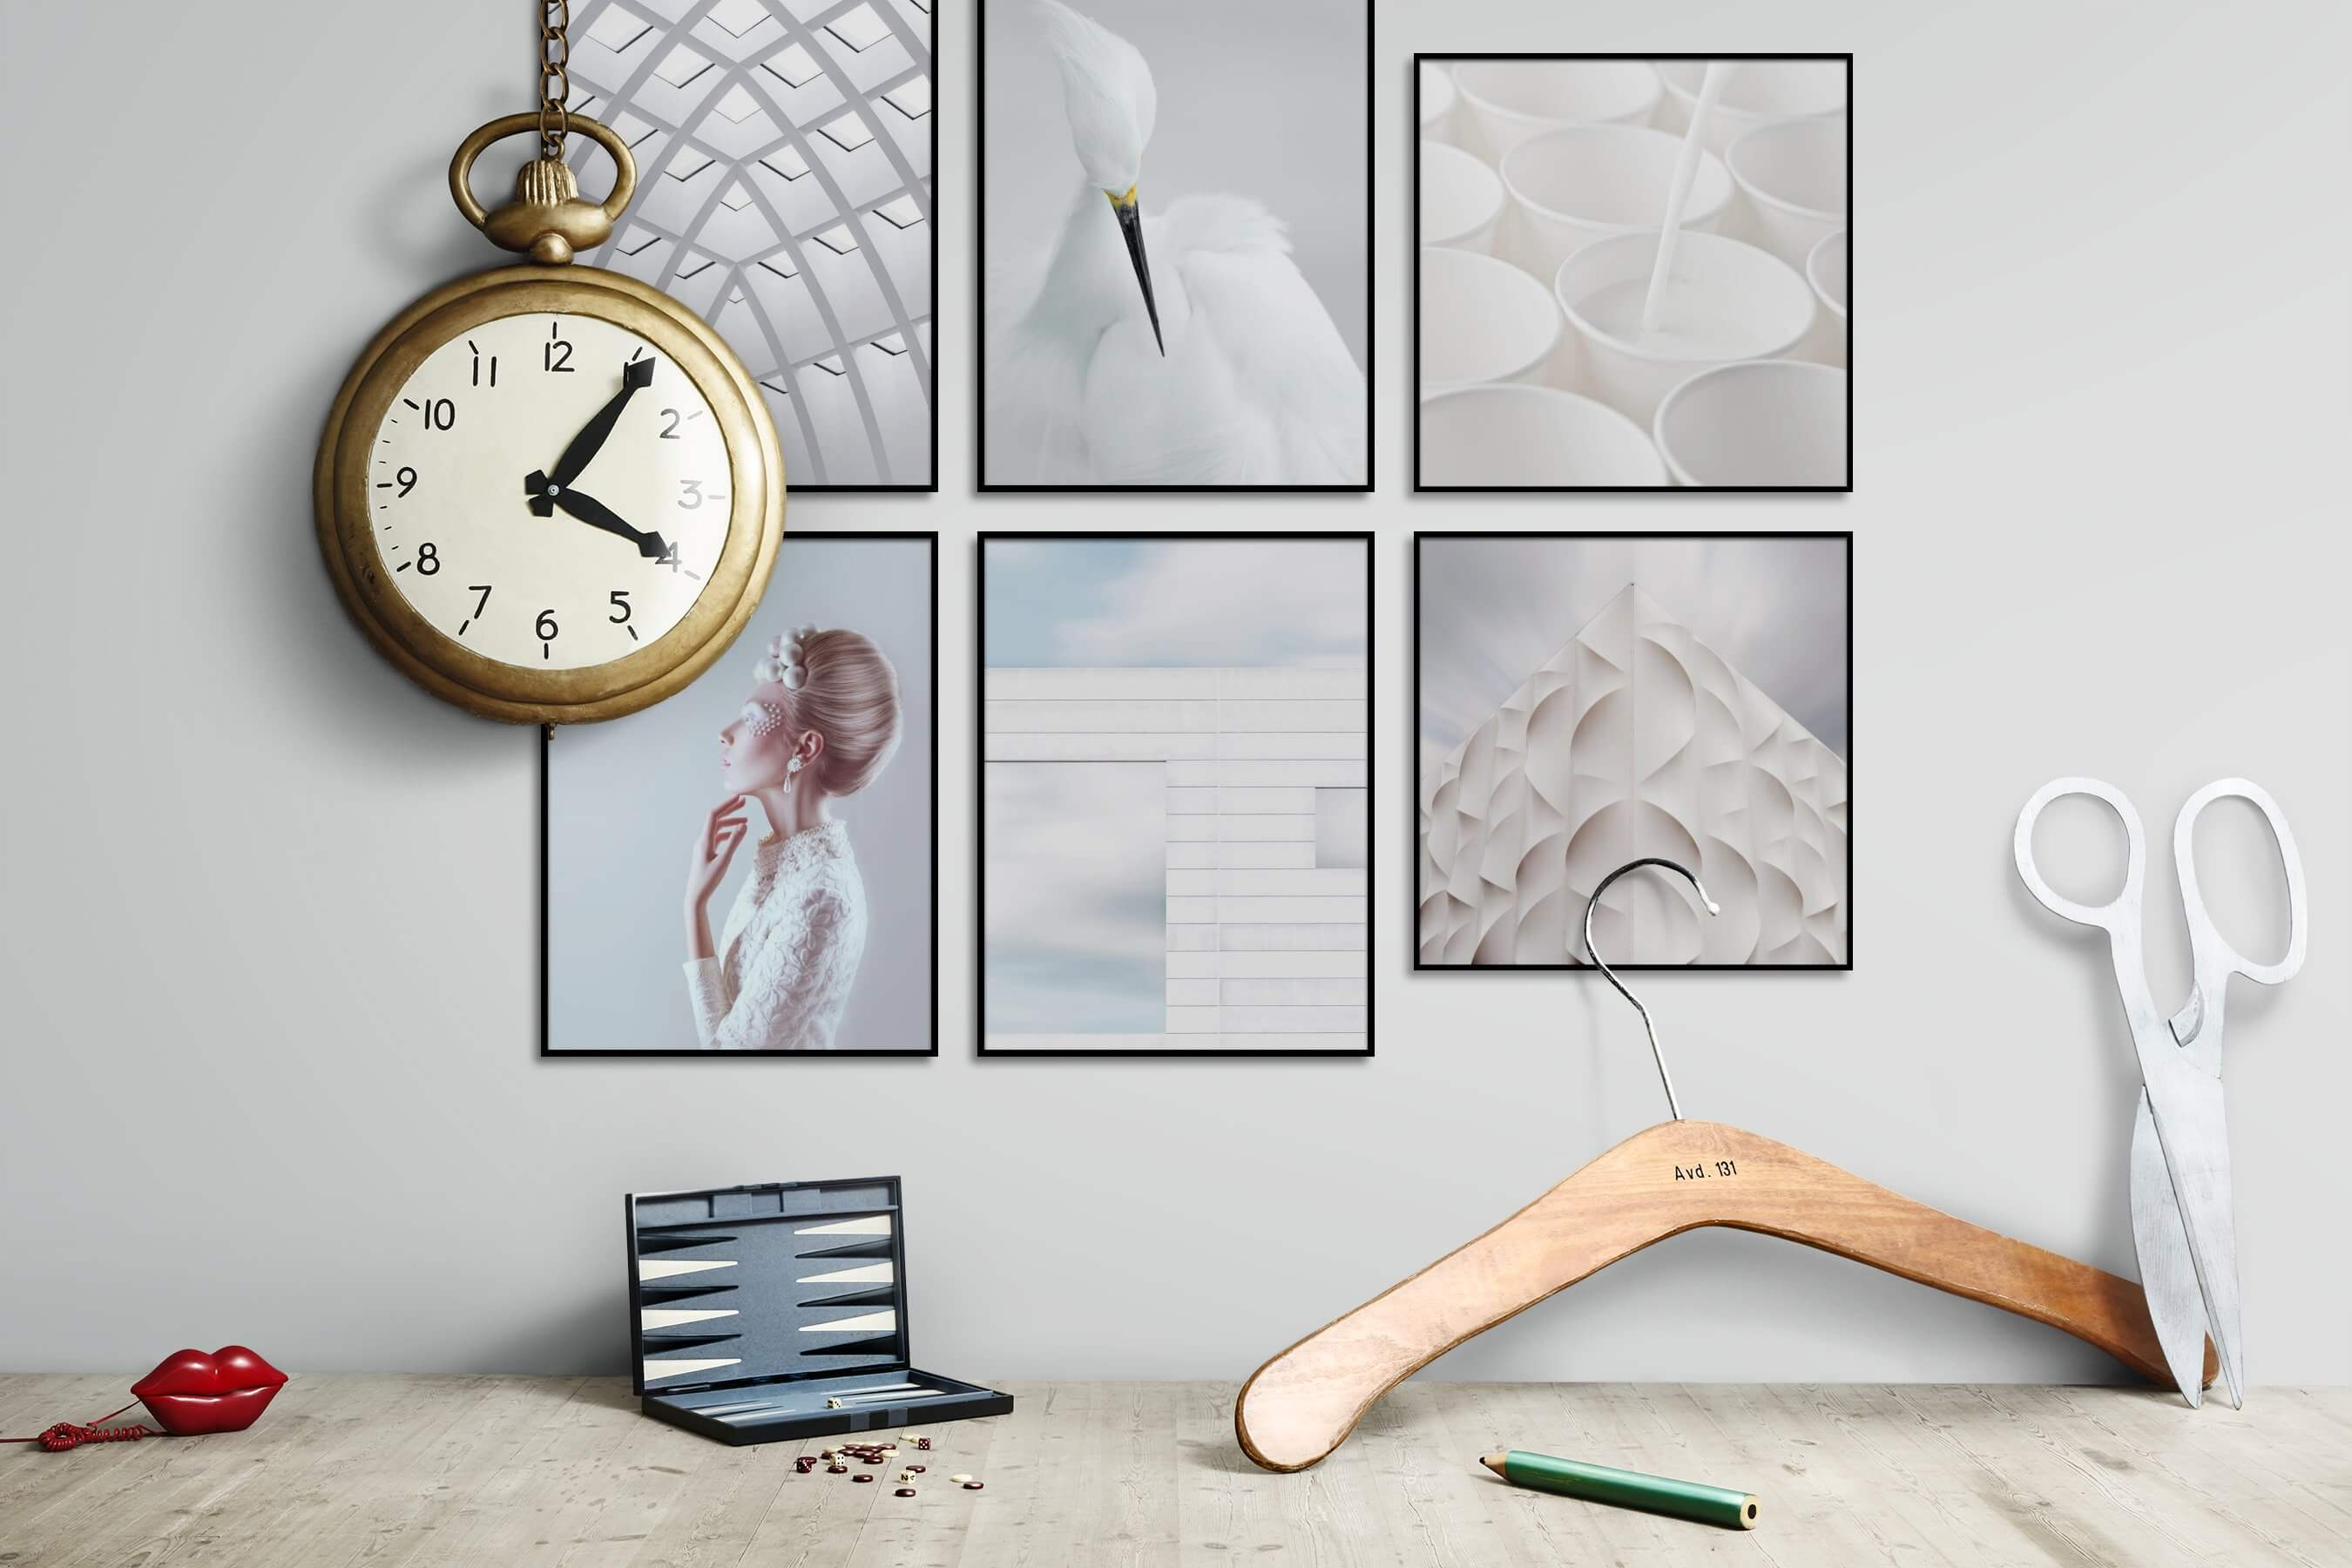 Gallery wall idea with six framed pictures arranged on a wall depicting Black & White, For the Moderate, For the Minimalist, Animals, and Fashion & Beauty